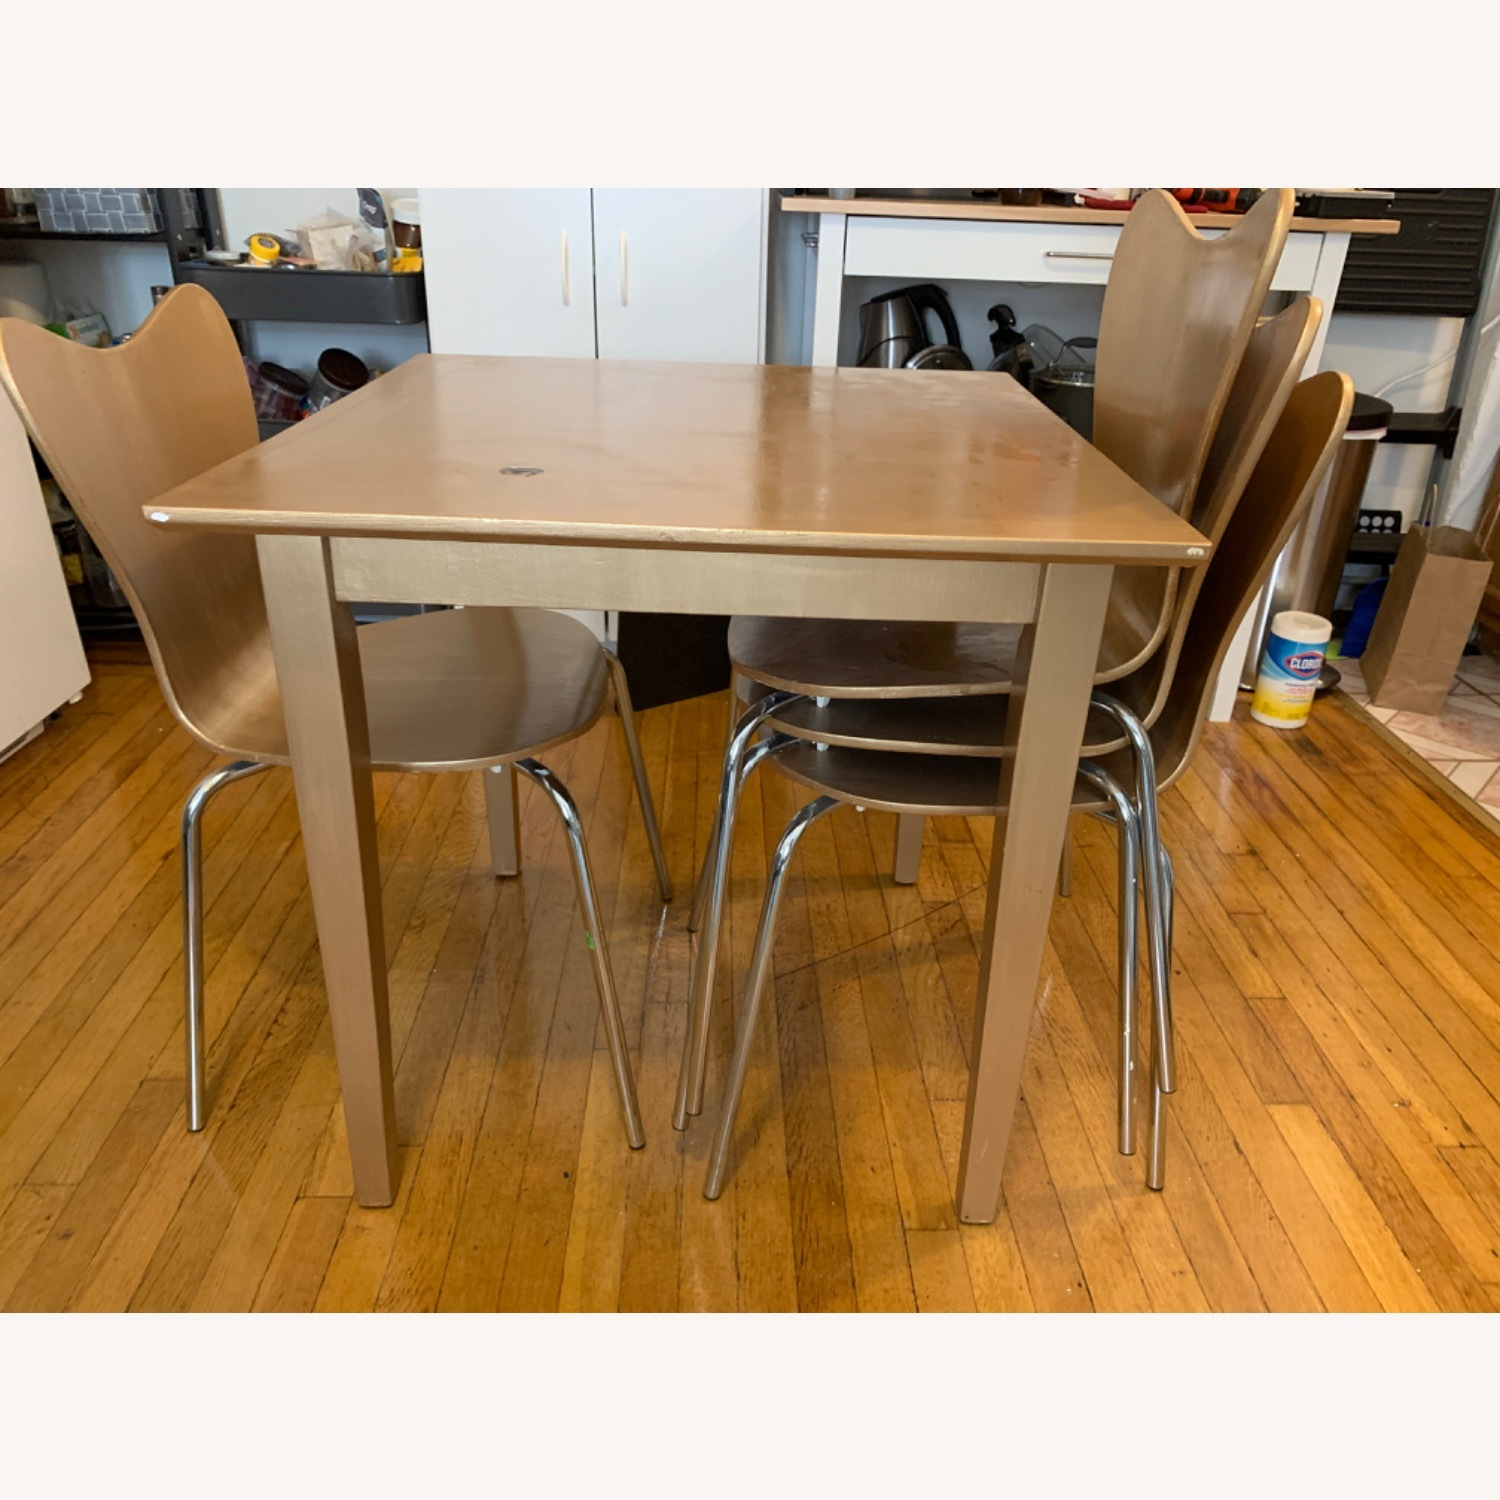 Gold West Elm (4) Chairs and Table - image-1